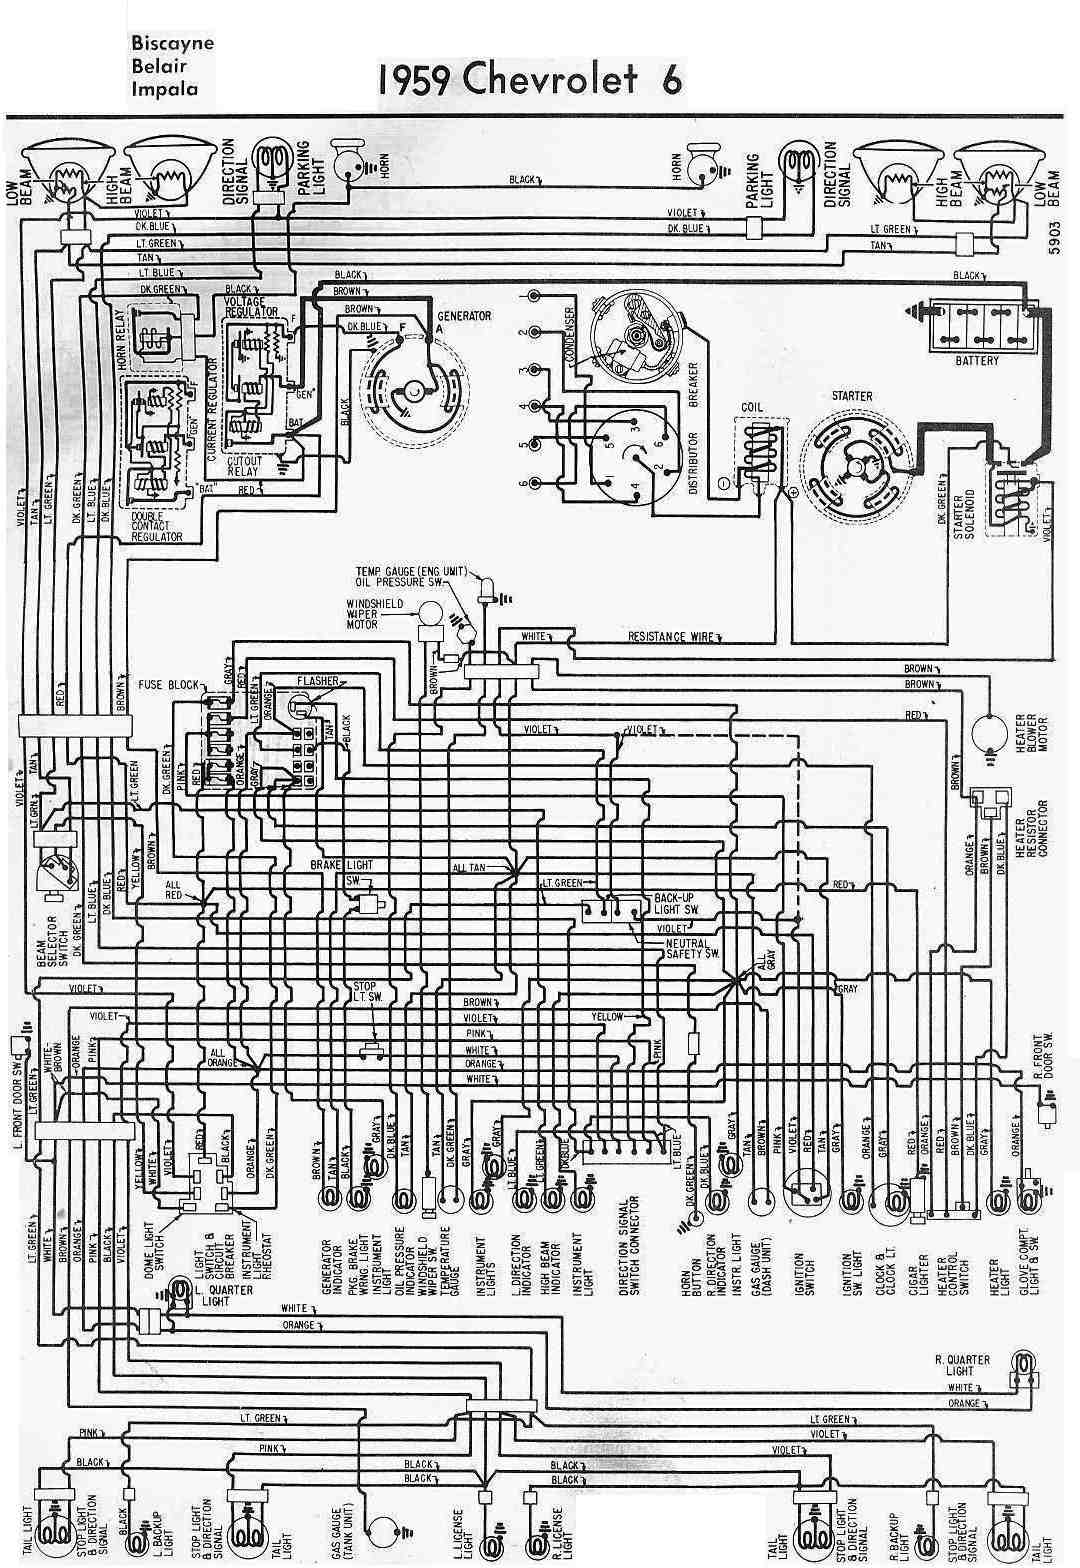 DOWNLOAD [GRAFICK] 68 Impala Wiring Diagram Picture Schematic FULL Version  HD Quality Picture Schematic - FLYOVERSEAS.KINGGO.FRflyoverseas kinggo fr